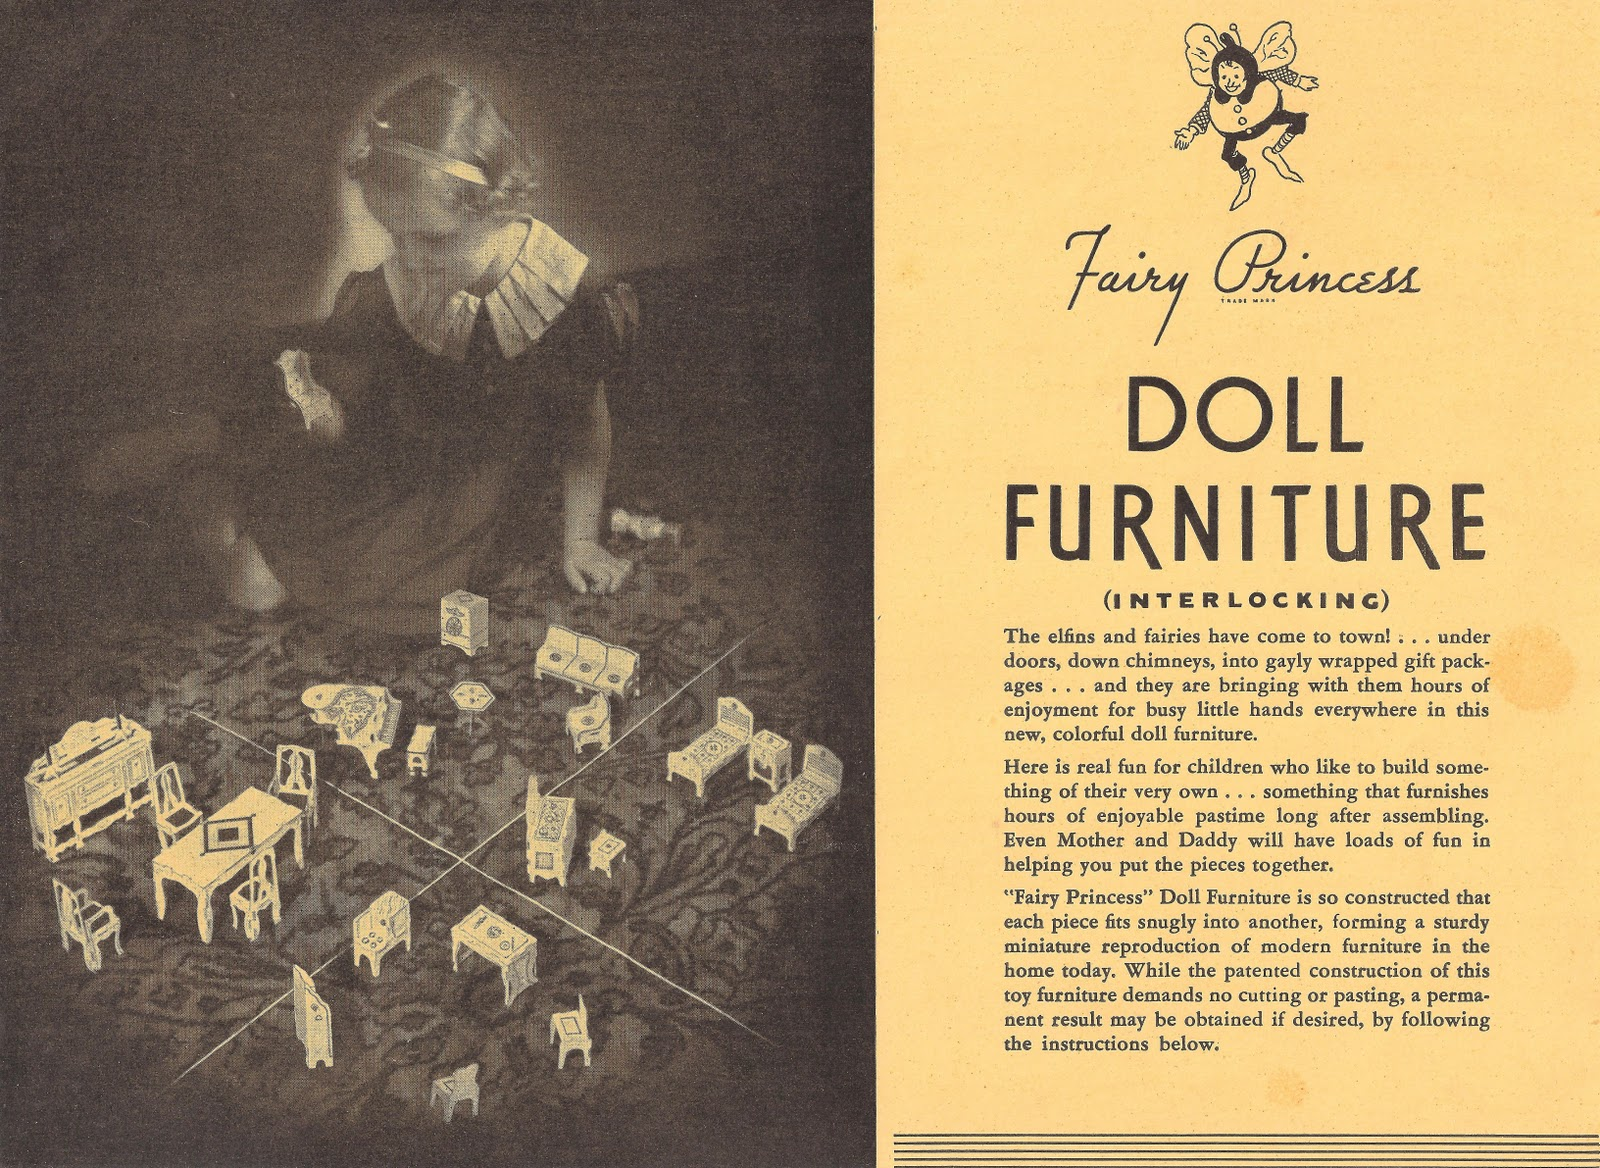 Fairy Princess Doll Furniture by Florine Bettge - Dolls\' Houses Past ...